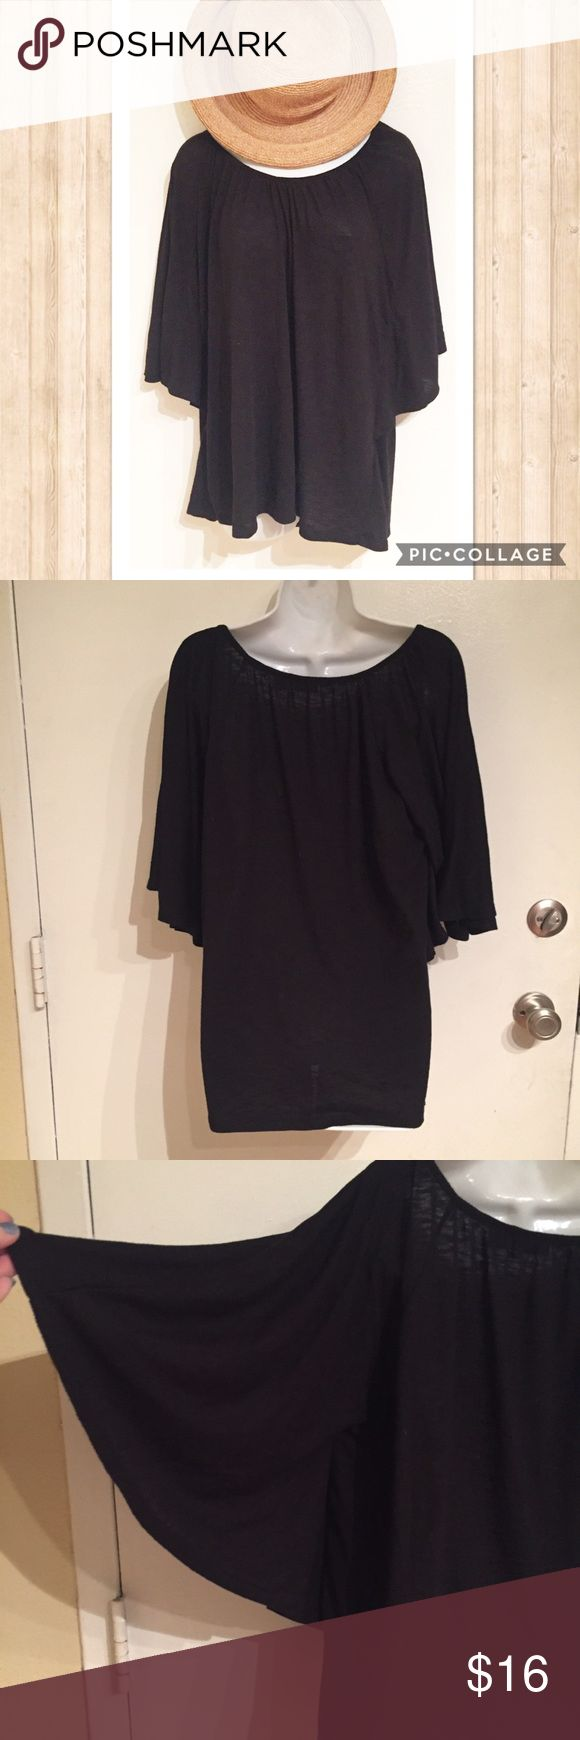 ☘️5for$25🍀Cato Black Batwing Sleeve Top Cato basic black Batwing Sleeve Top. Size large. #cato #basic #black #batwing #angelwing #kimono #top #large #punkydoodle  No modeling Smoke free home I do discount bundles Cato Tops